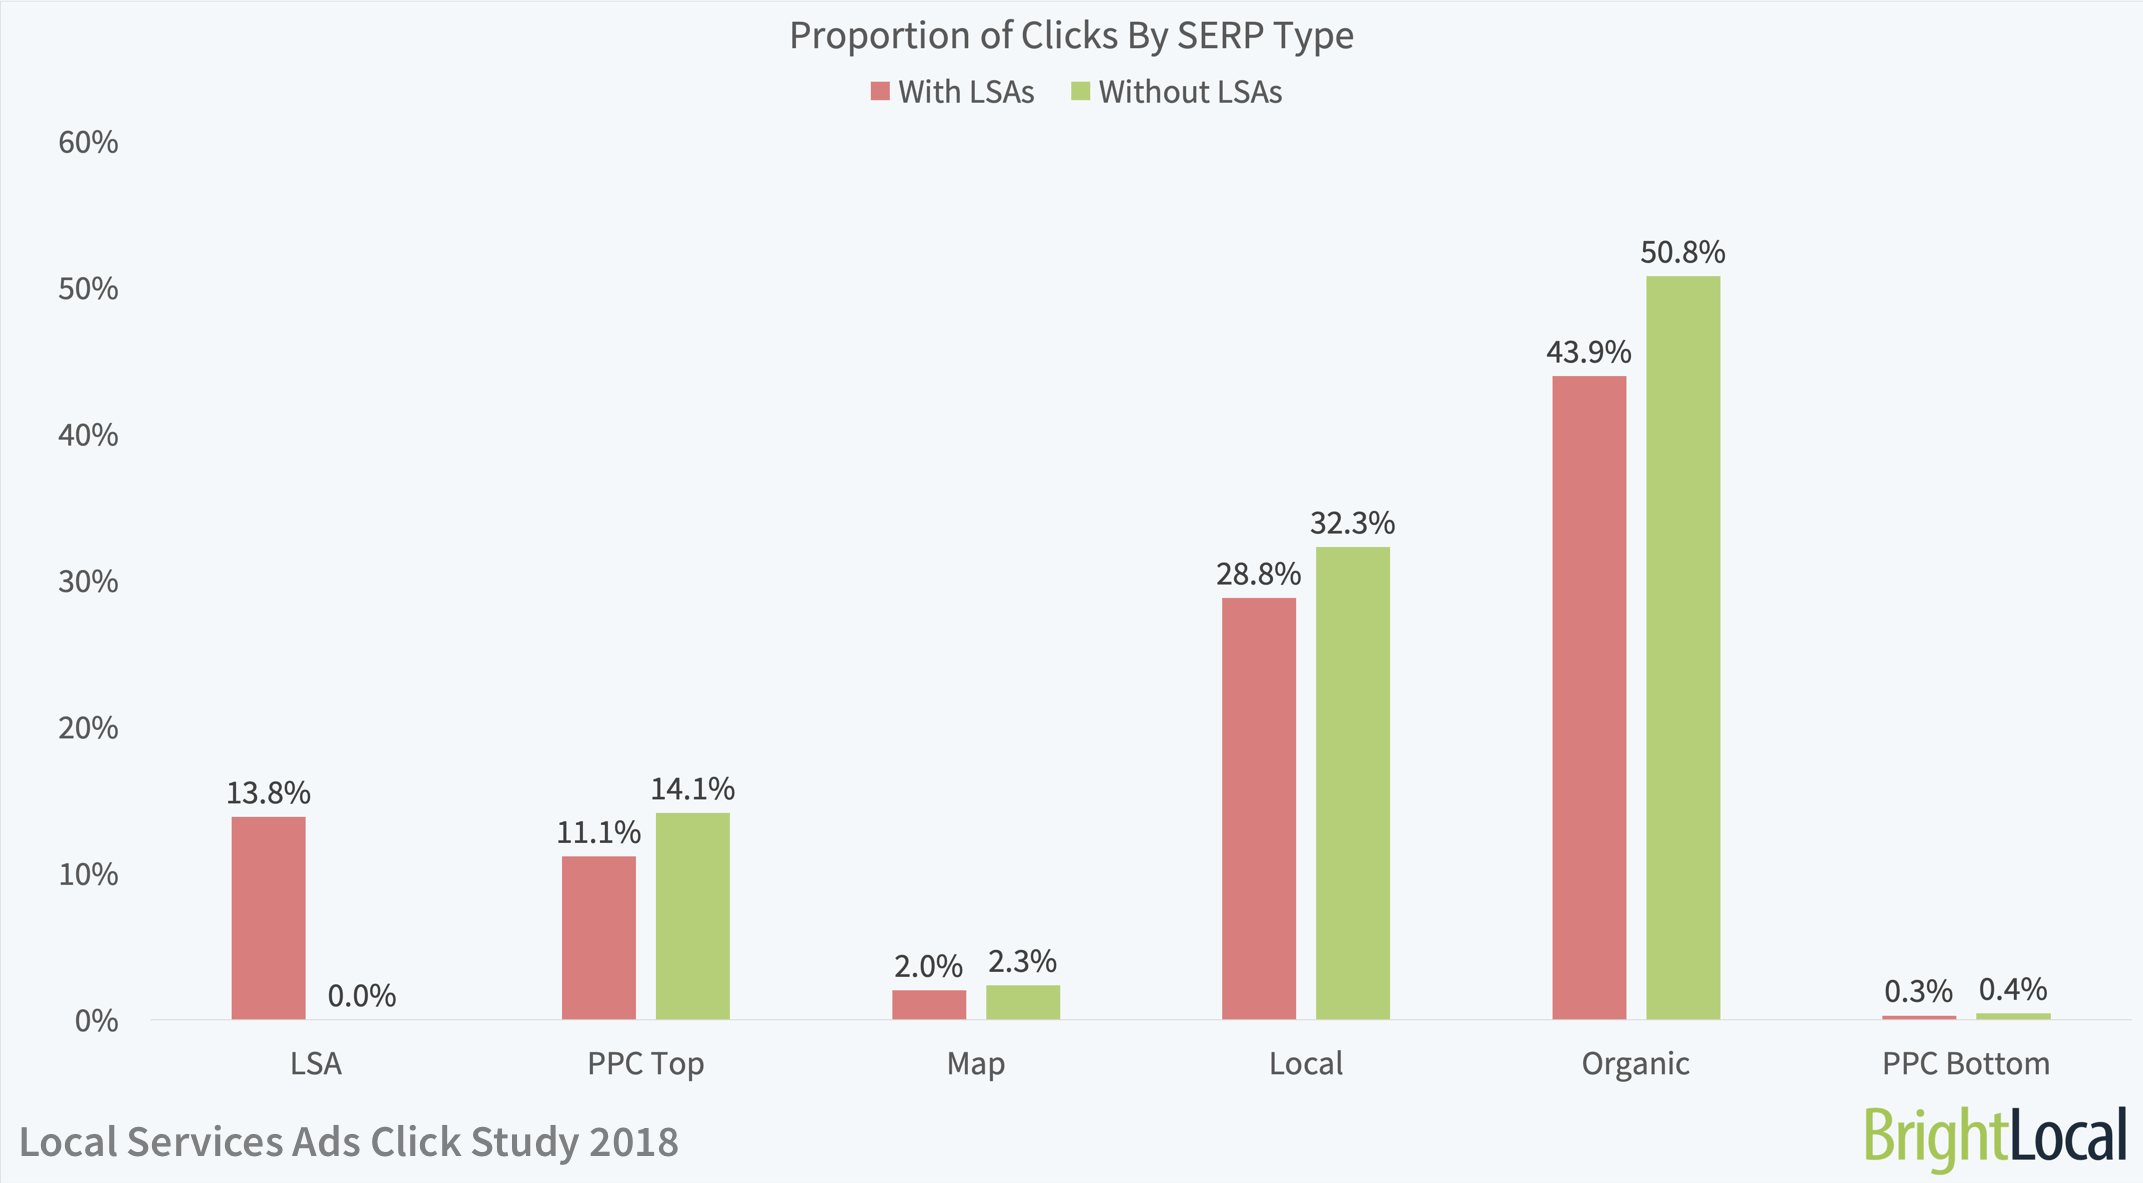 Proportion of Clicks By SERP Type